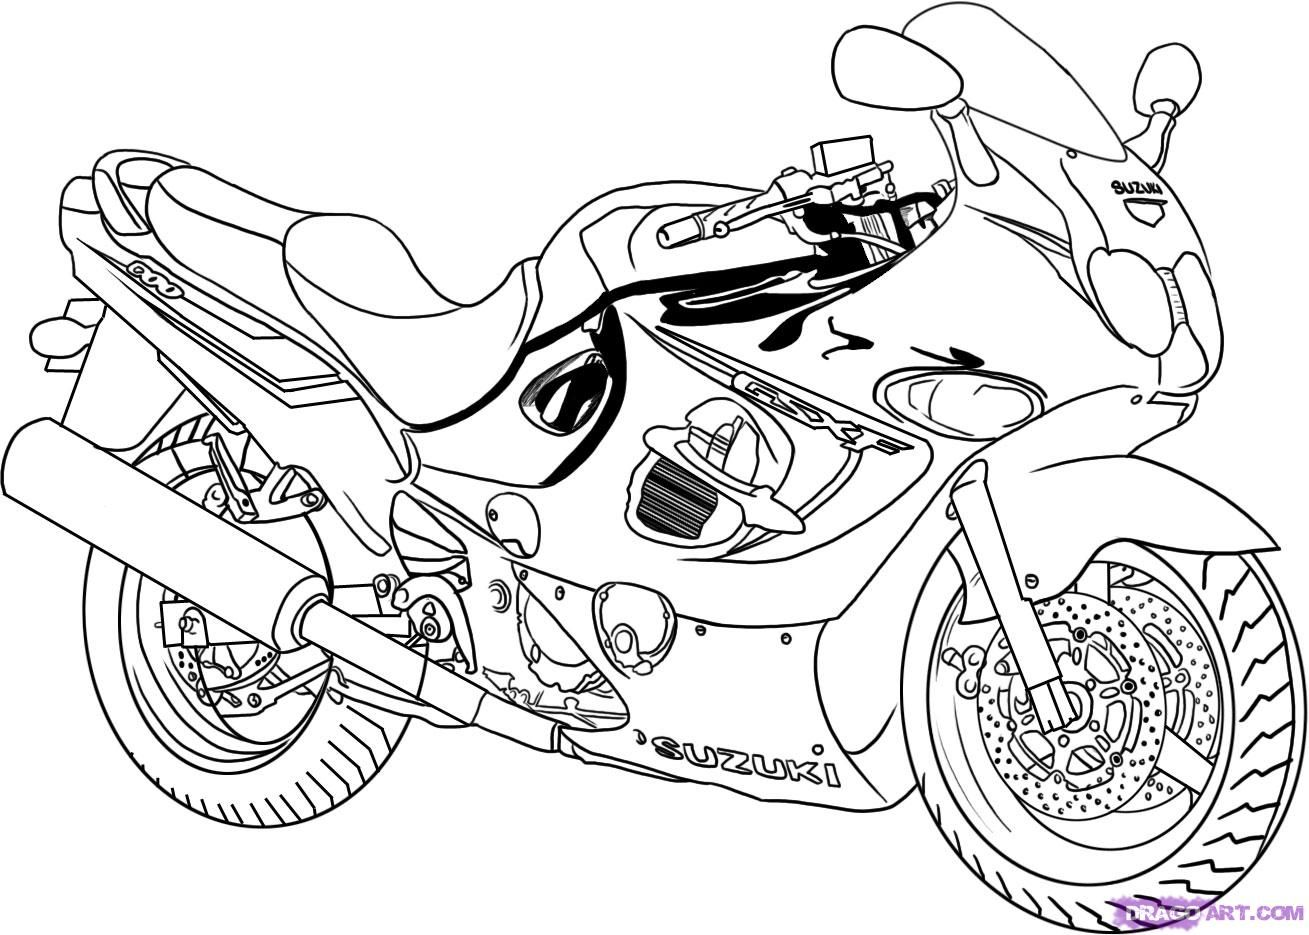 As it is correct to draw the motorcycle (Suzuki Katana 600) step by step